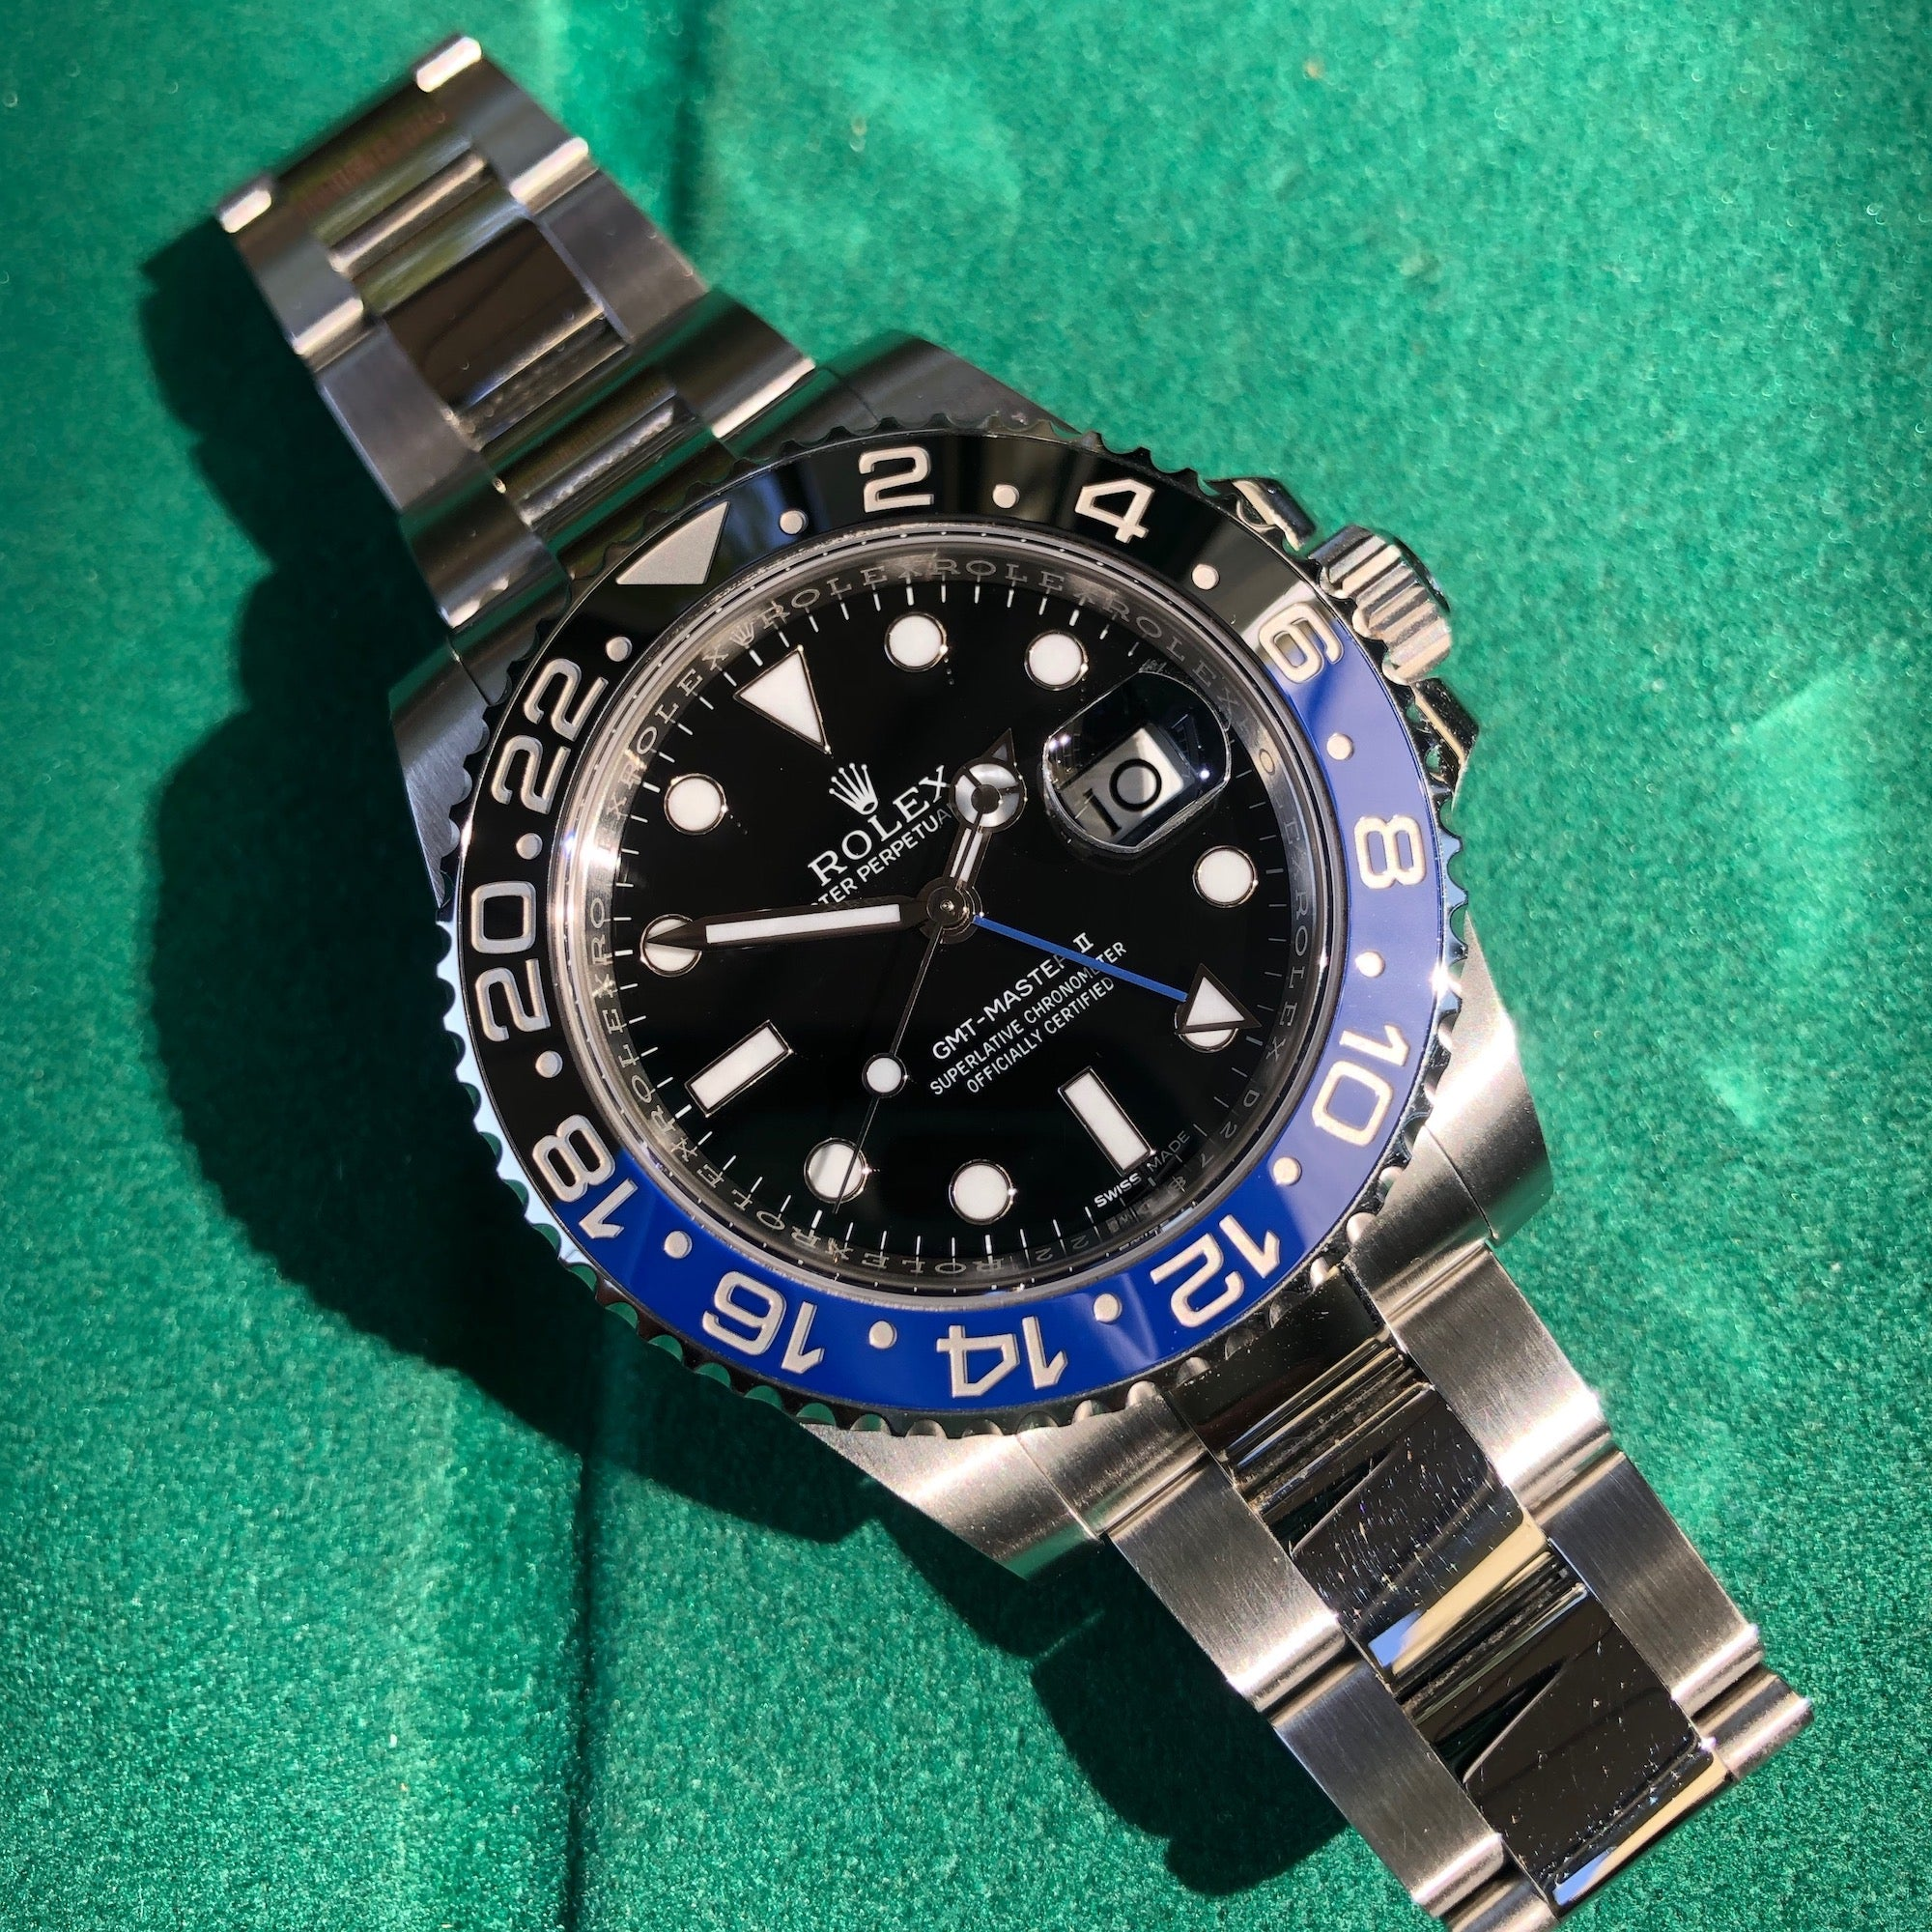 Rolex GMT Master II 116710 BLNR Batman Ceramic Steel Automatic Wristwatch Box Papers - Hashtag Watch Company